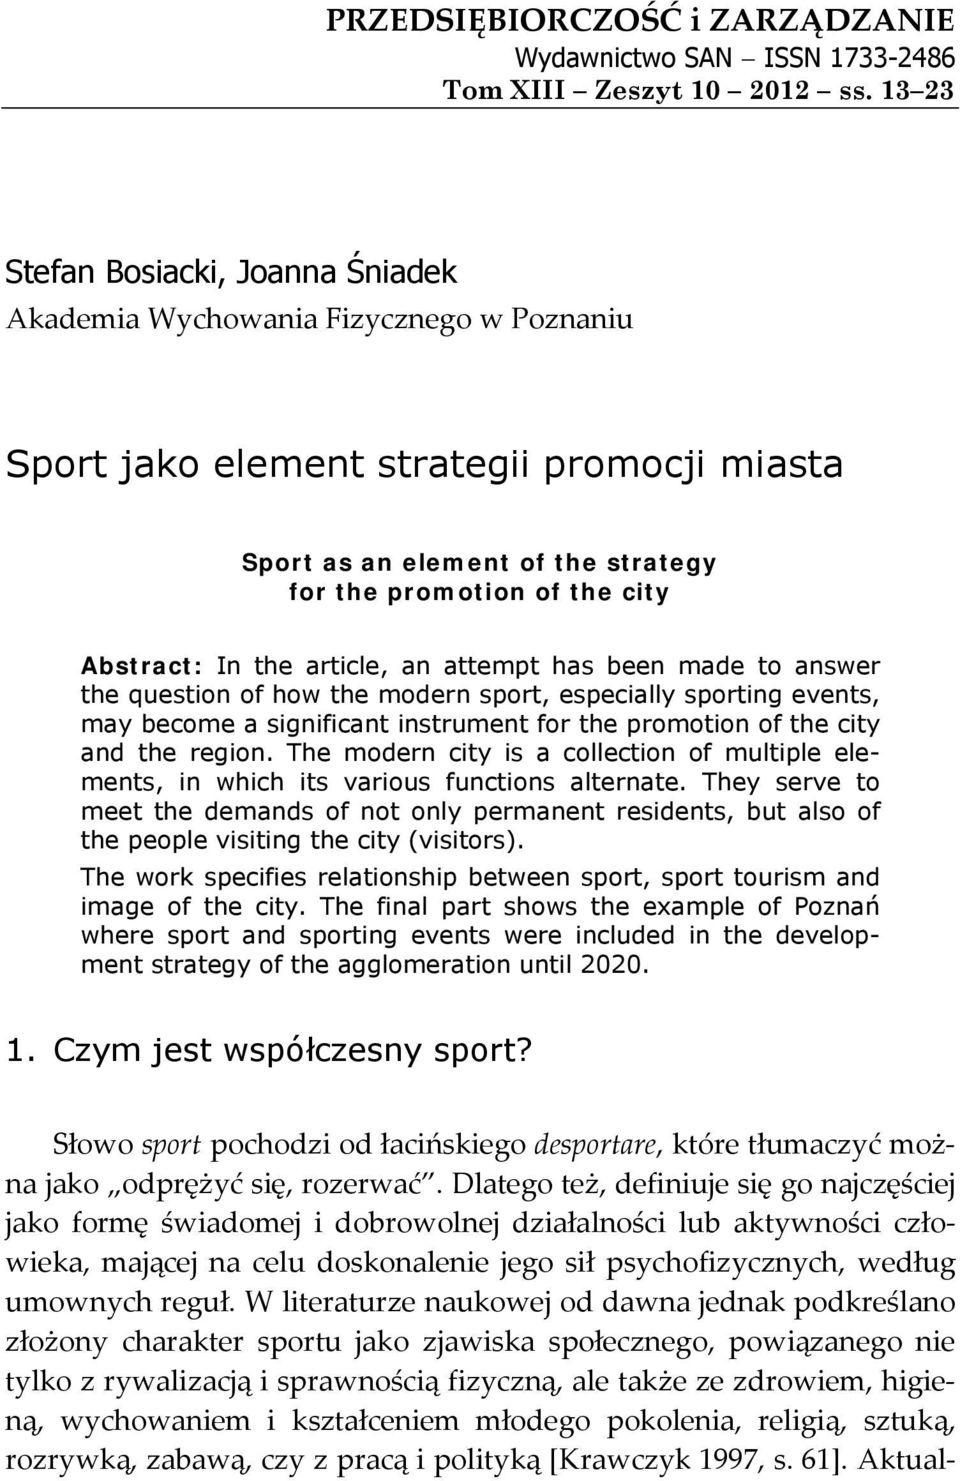 Abstract: In the article, an attempt has been made to answer the question of how the modern sport, especially sporting events, may become a significant instrument for the promotion of the city and